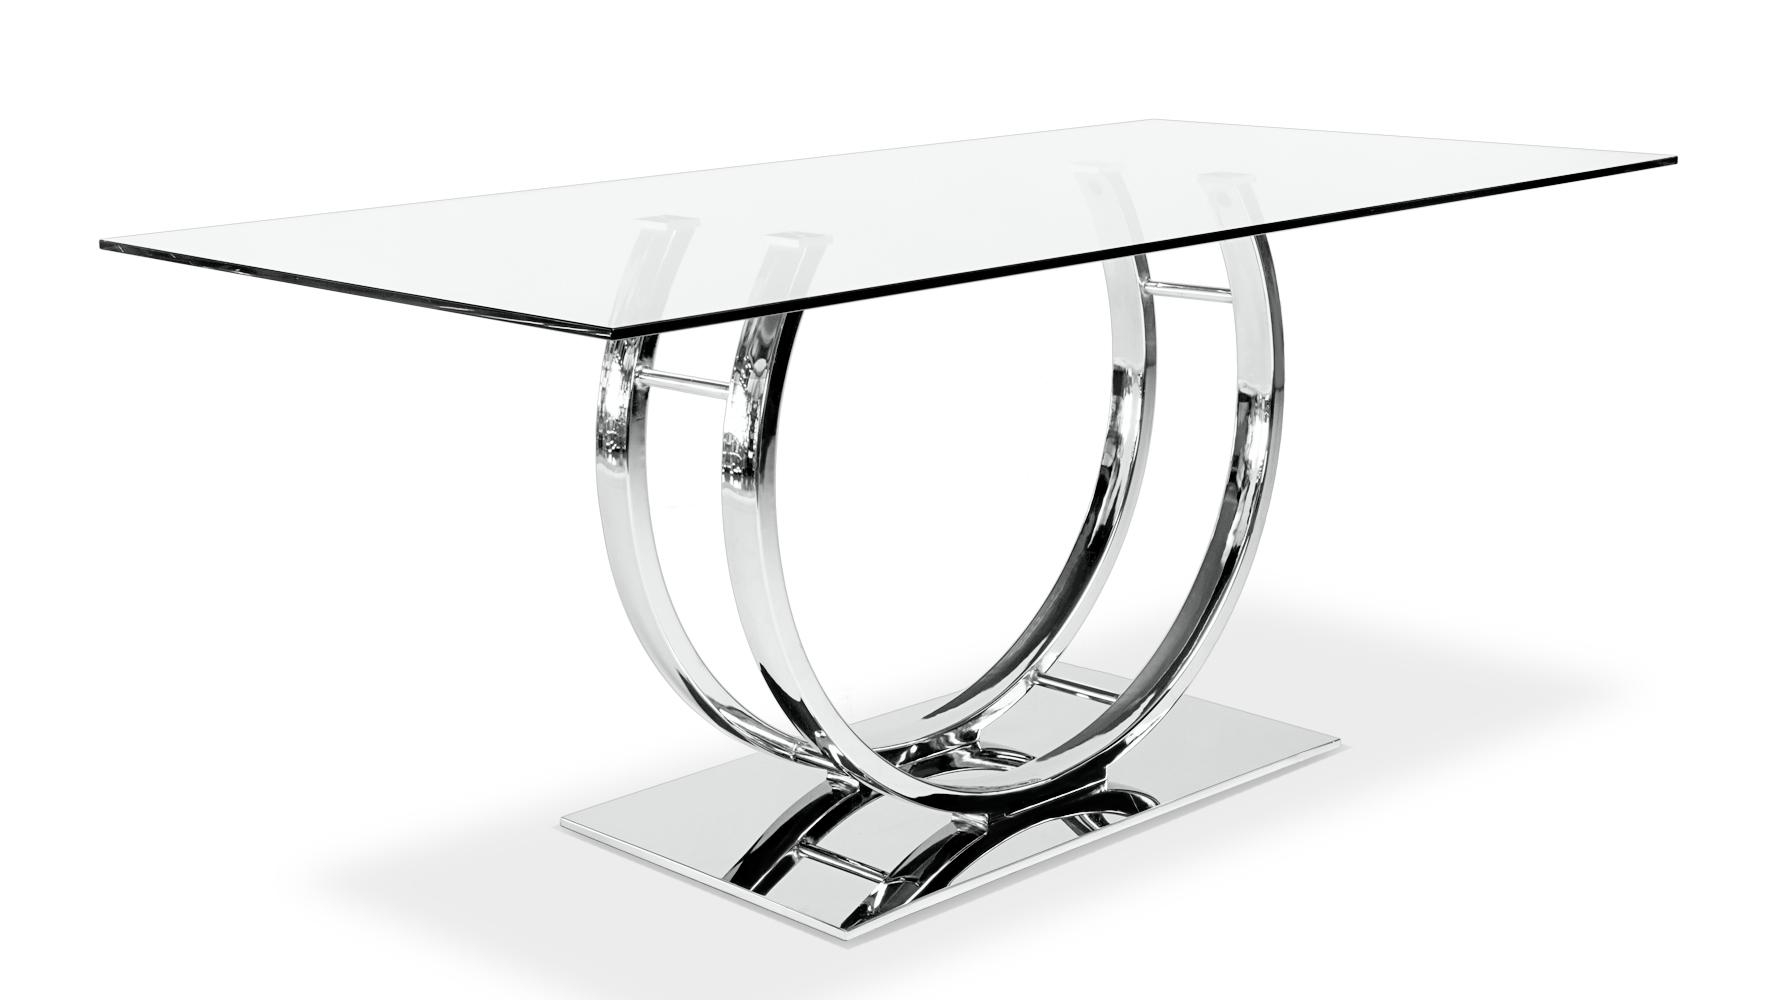 Palazzo Glass Modern Dining Table With Polished Chrome Base | Zuri Inside Chrome Sofa Tables (Image 15 of 20)